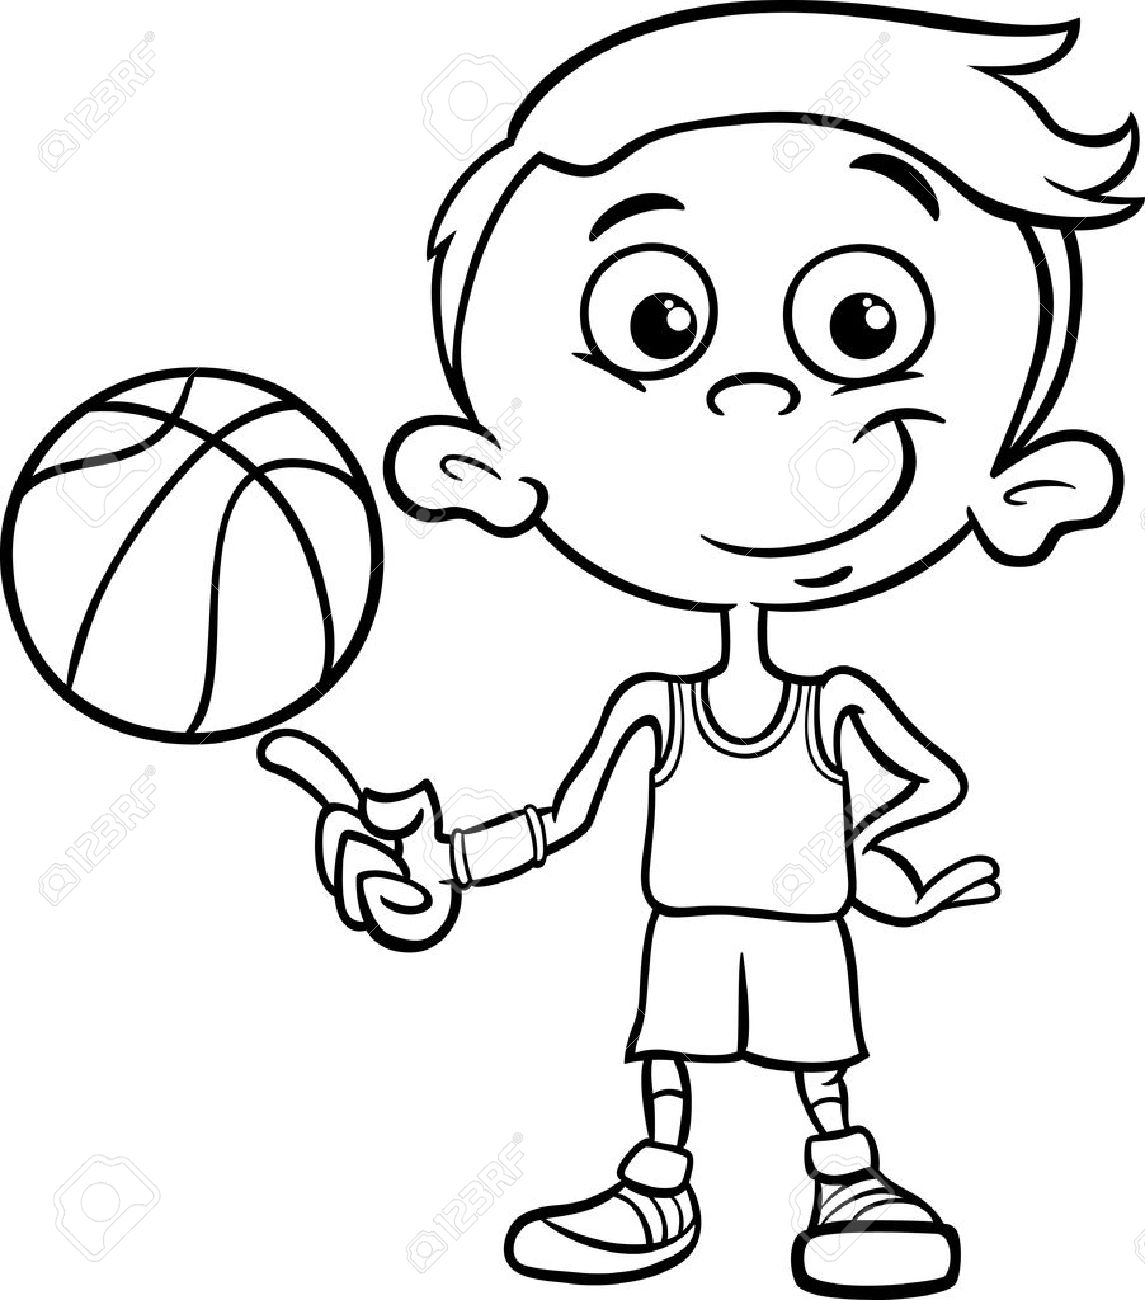 Black And White Cartoon Illustration Of Funny Boy Basketball Player With Ball For Coloring Book Stock